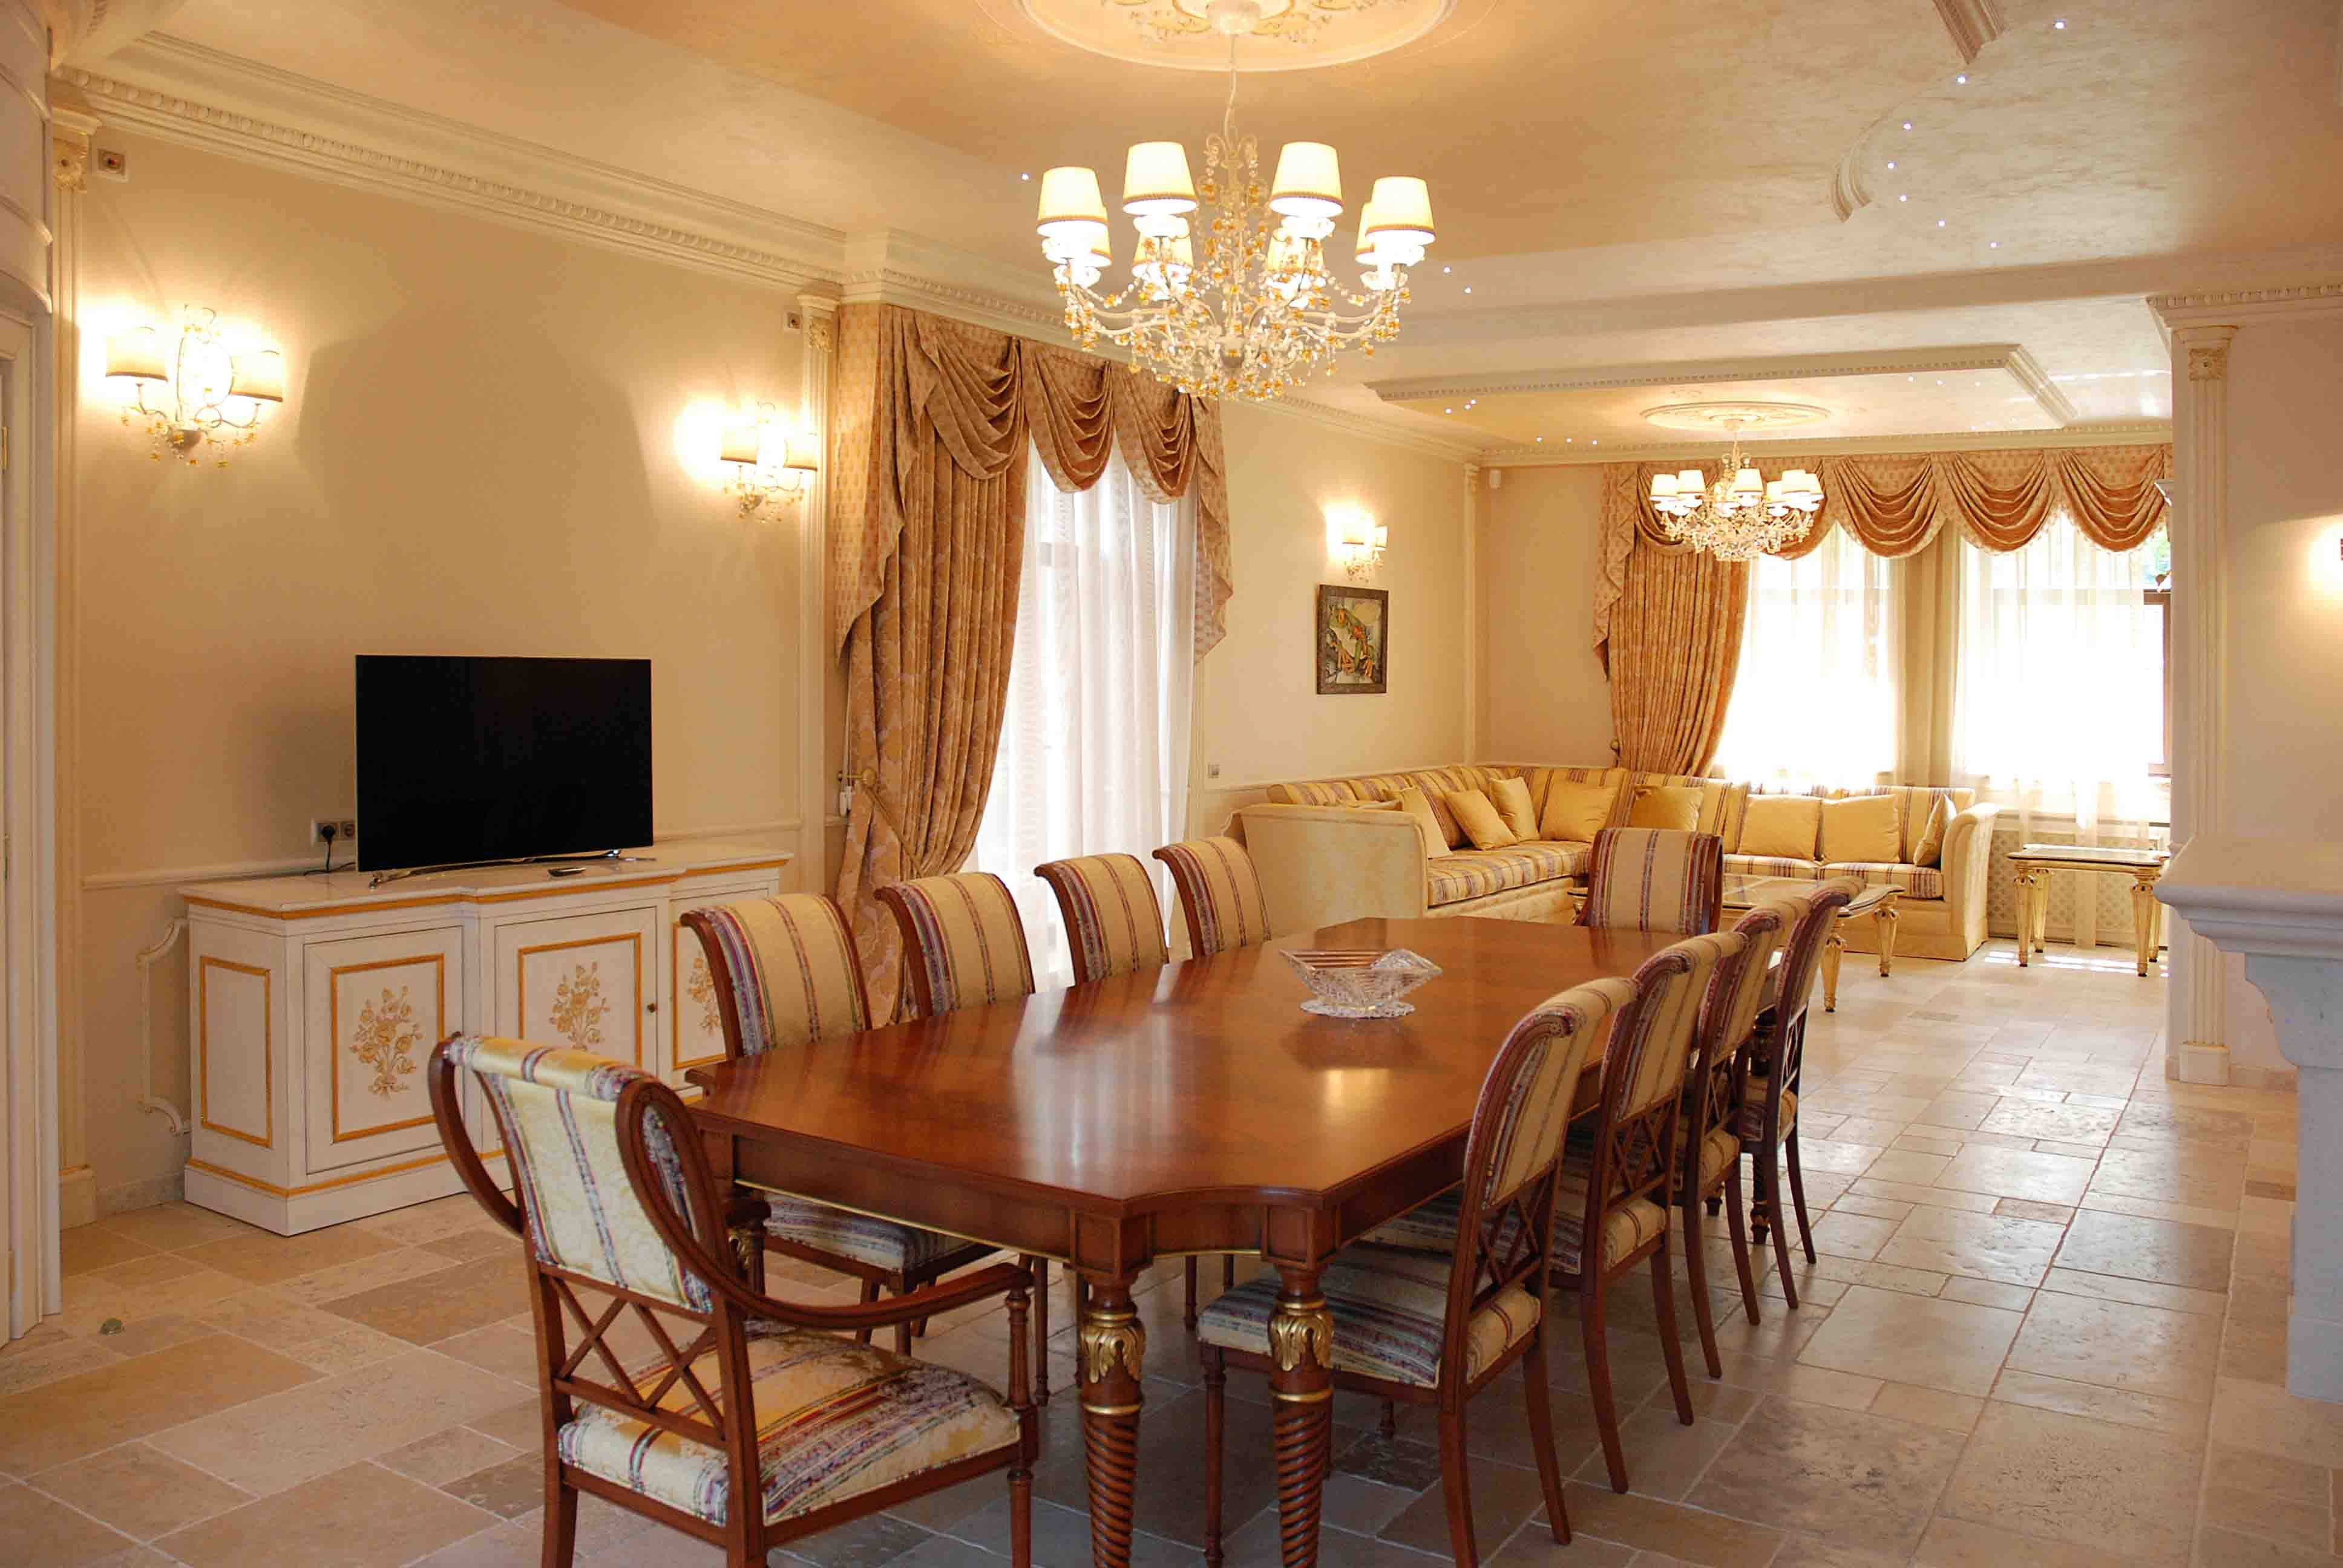 Dining room #italianstyle #abproduction #abstyle #madeinitaly